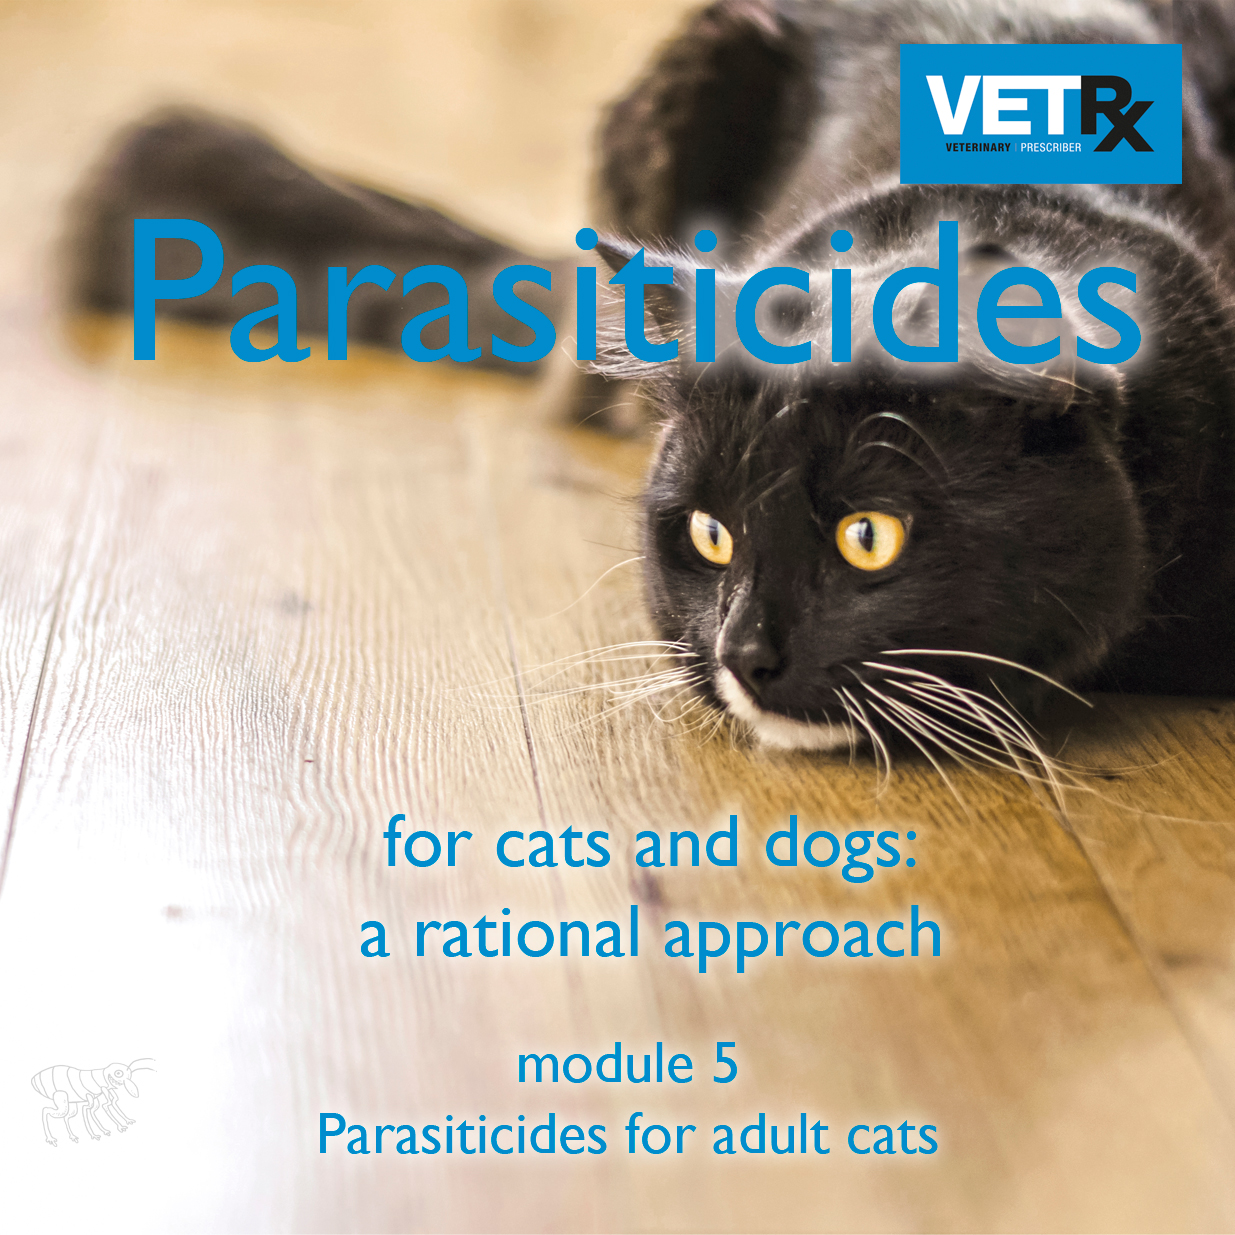 Why do this module?   Control of parasites in cats is a key responsibility for veterinary professionals. The area is complicated because therapy must be suited to each cat, there is an overwhelmingly large choice of parasiticide products on the market and very intense promotional activity by drug companies. The aim of this module is to help veterinary professionals use parasiticides rationally. It covers the five main parasites that affect cats in the UK and the parasiticide drugs used to treat them, and outlines the different approaches to parasite control. The module will help readers become familiar with the full range of parasiticide products through integration of the comprehensive  Parasiticide Guide .